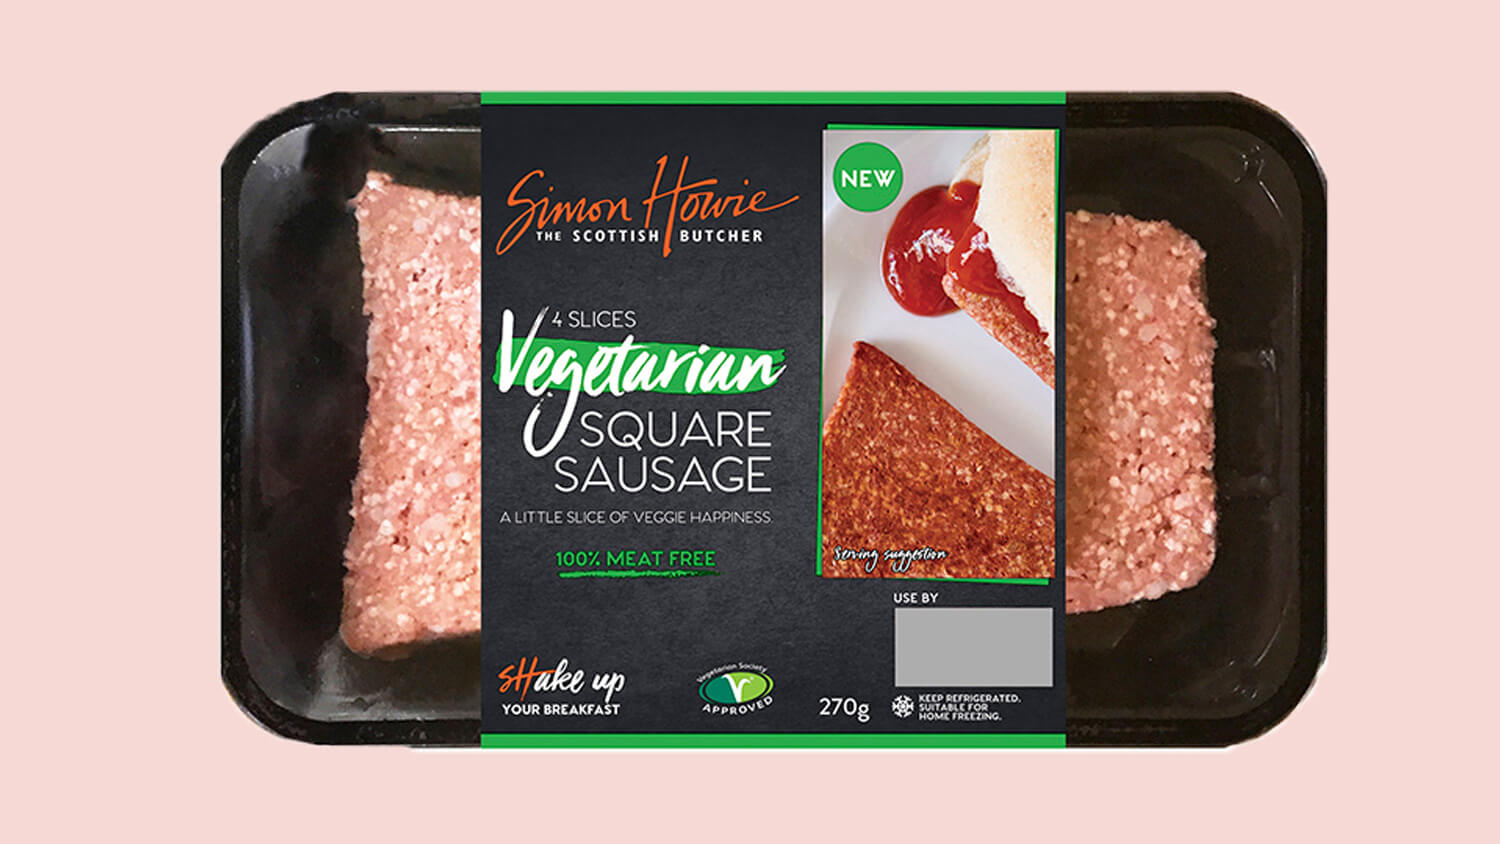 Vegan Square Scottish Breakfast Sausage Now Available in Morrisons and Aldi